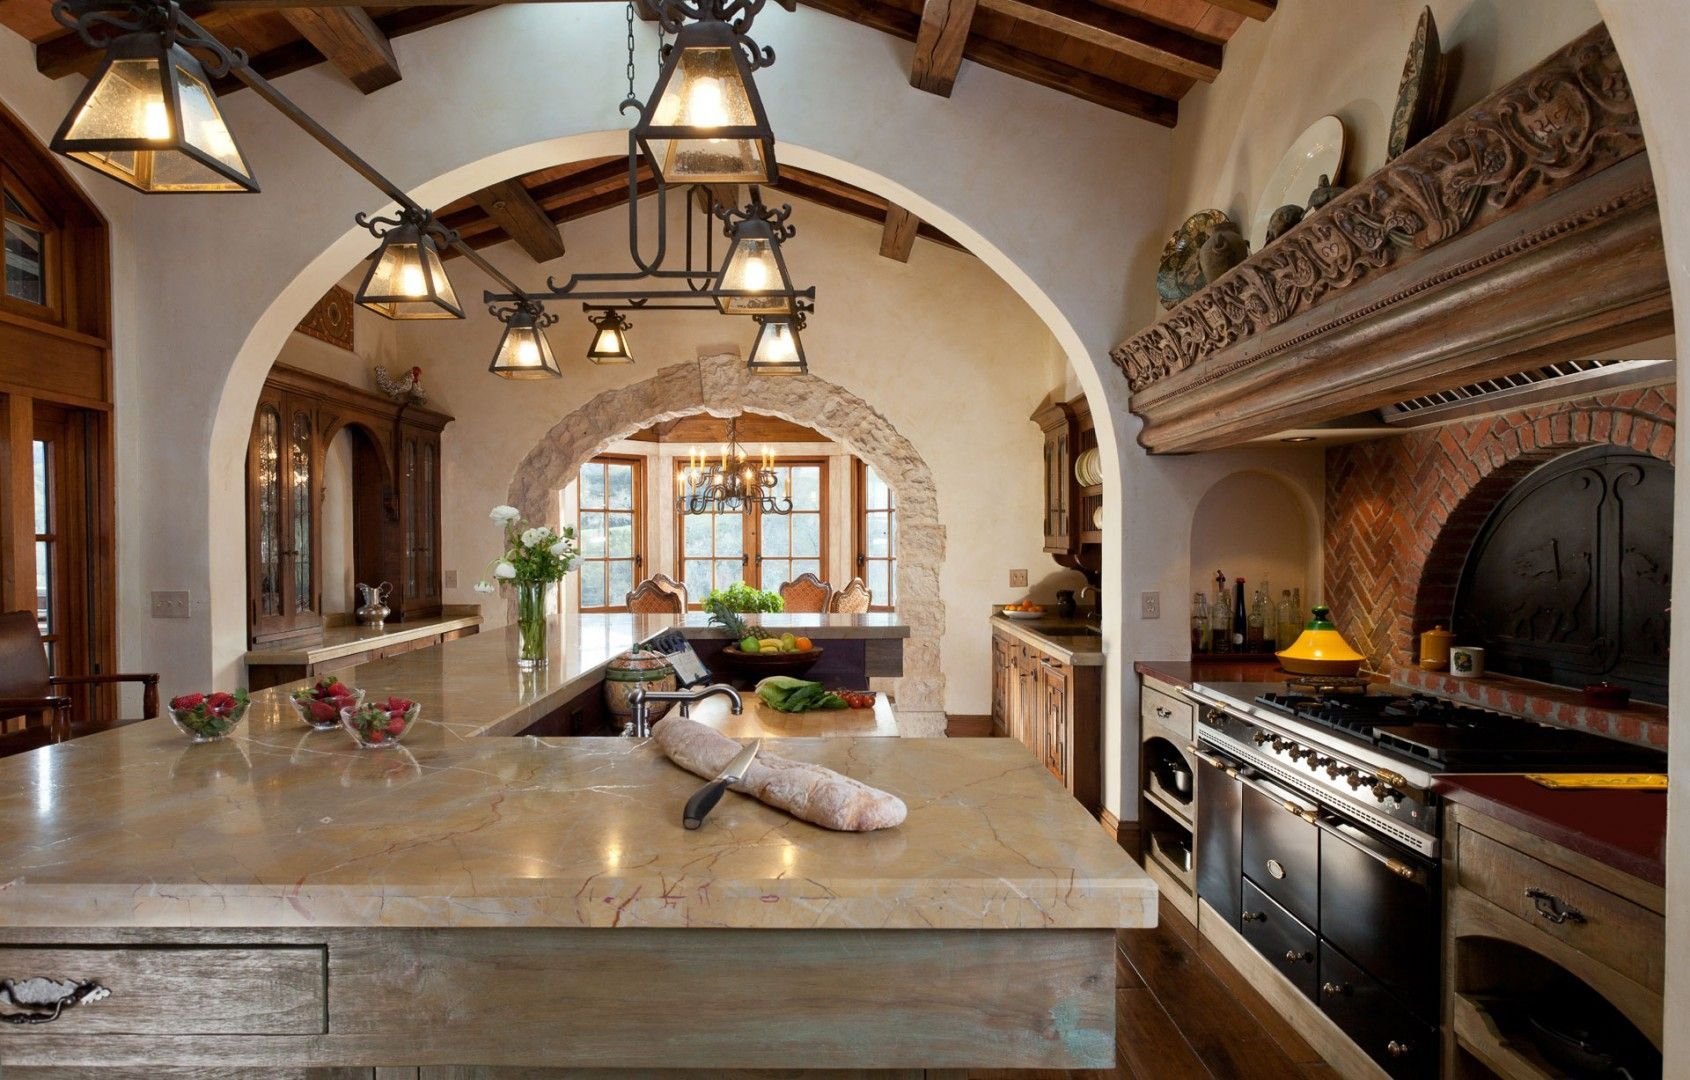 Spanish colonial kitchens a little dark but love the for Spanish mediterranean decor